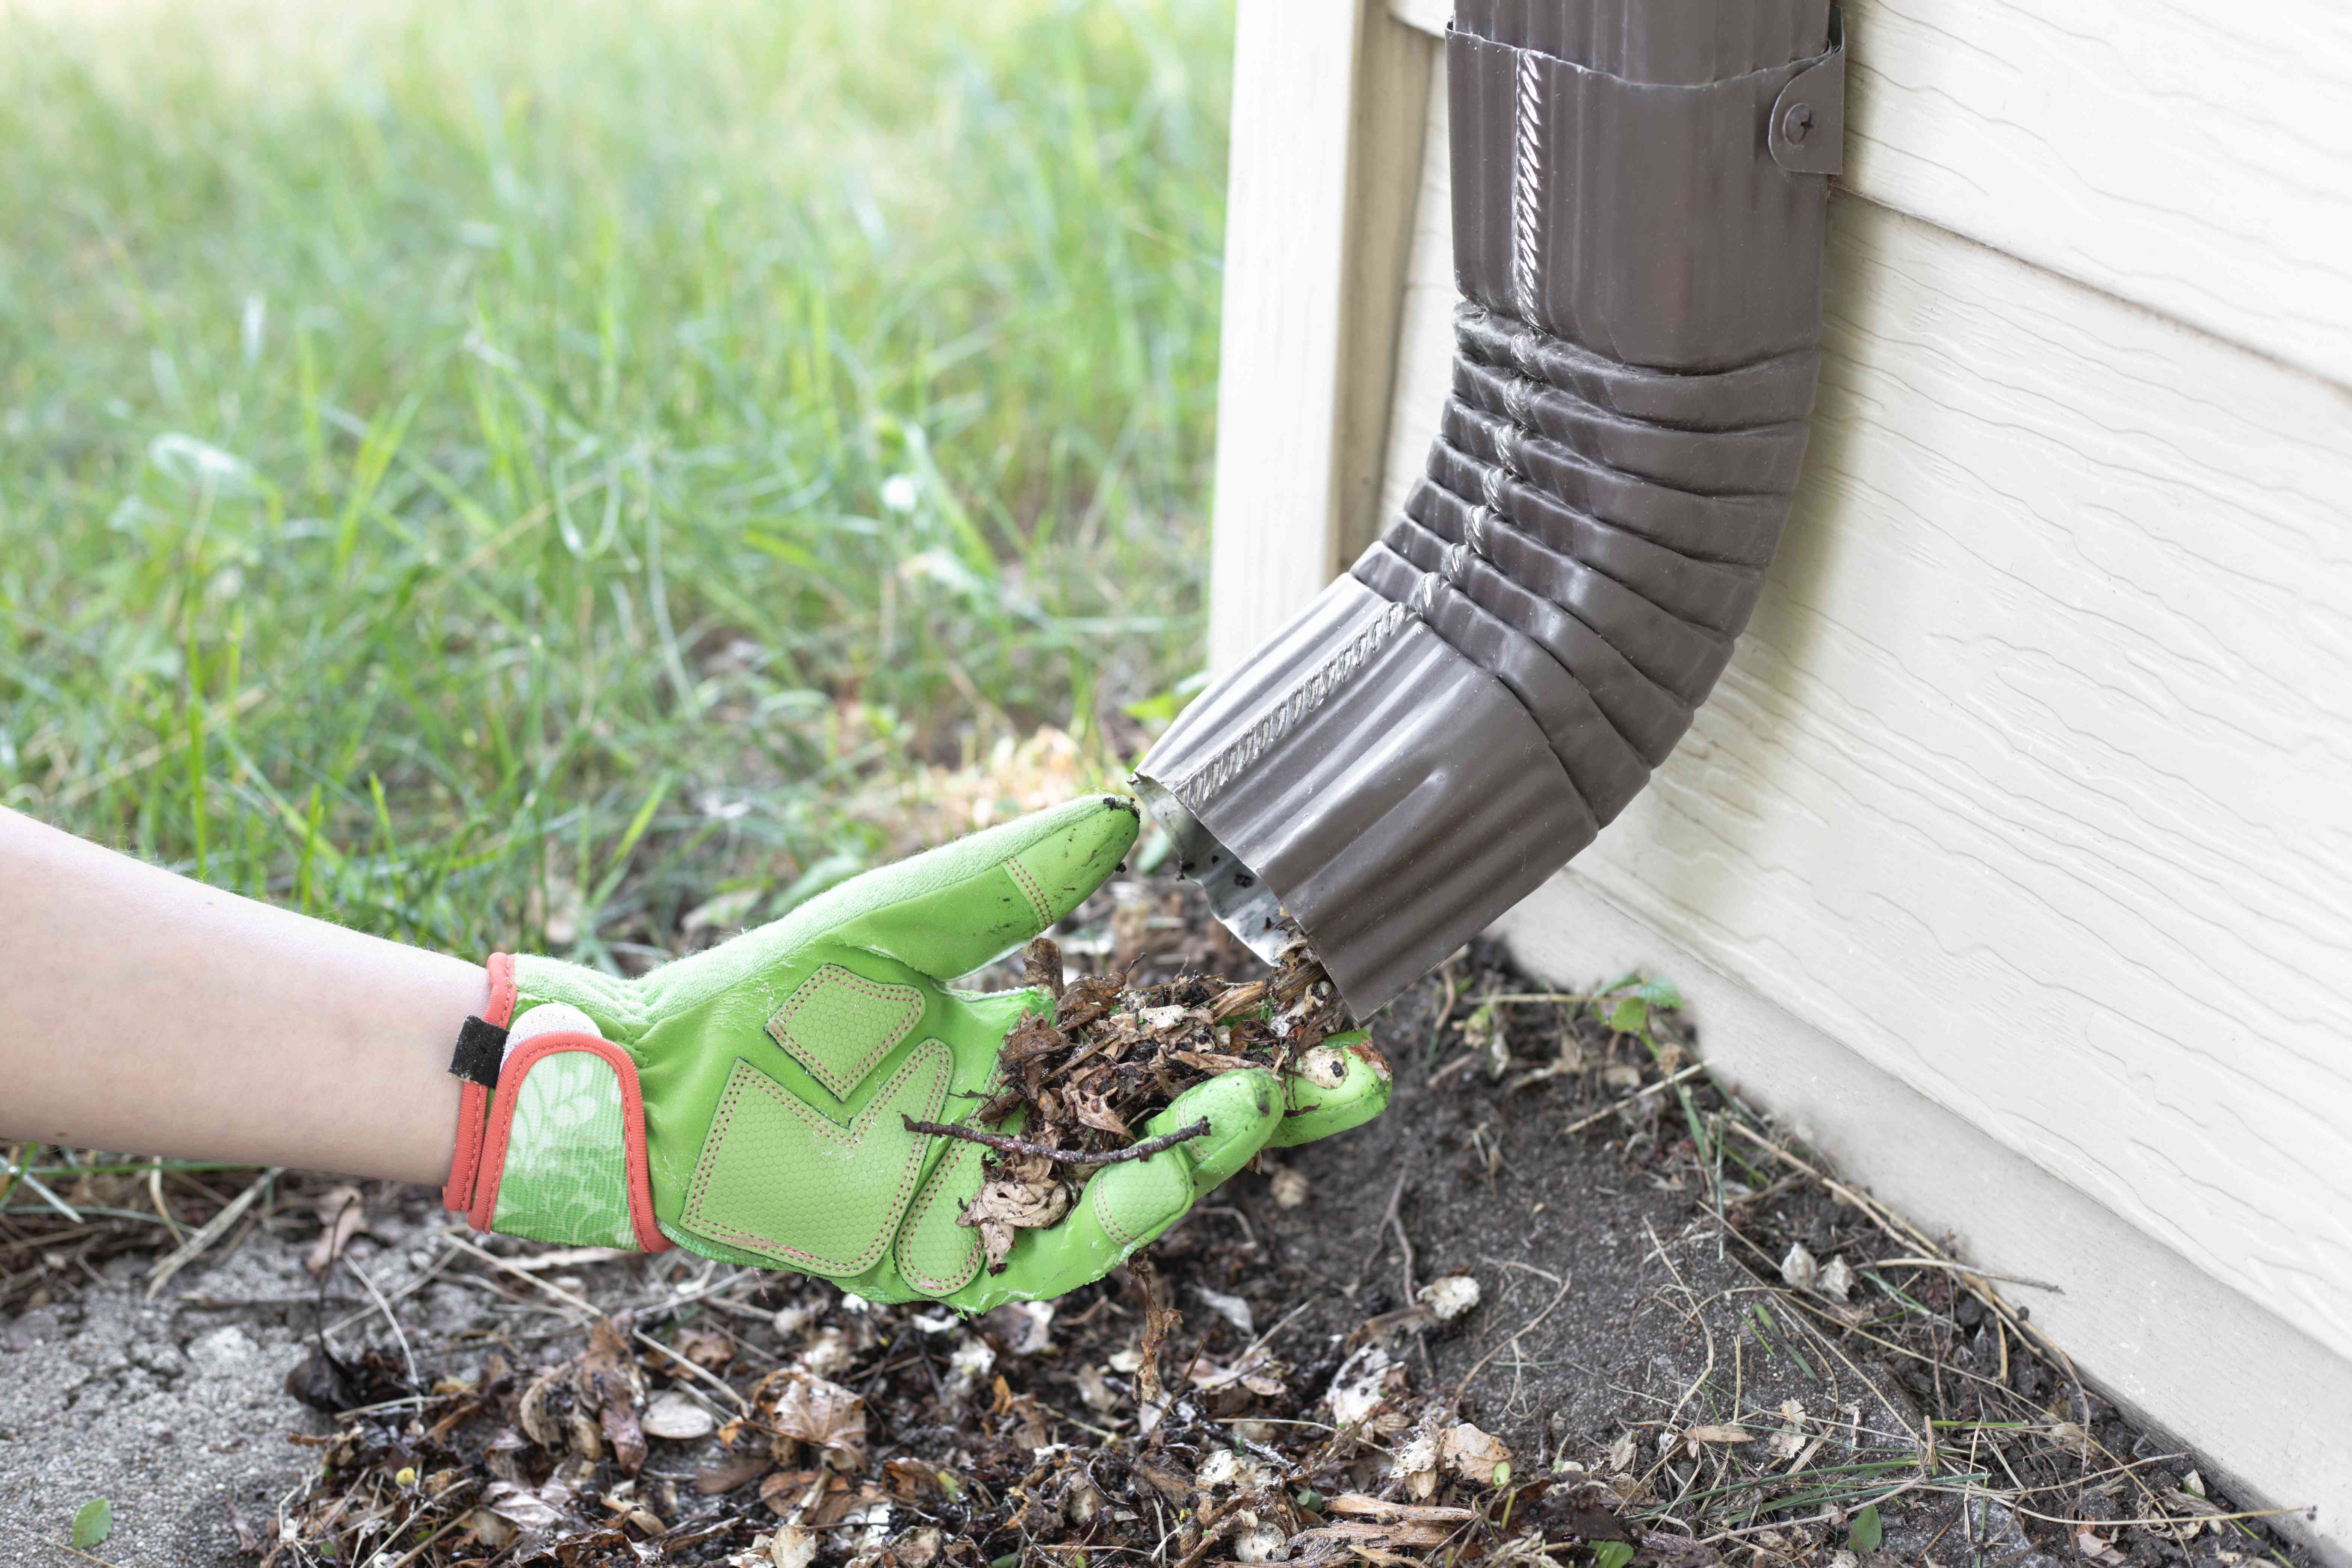 Gutter being cleaned out to prevent ants